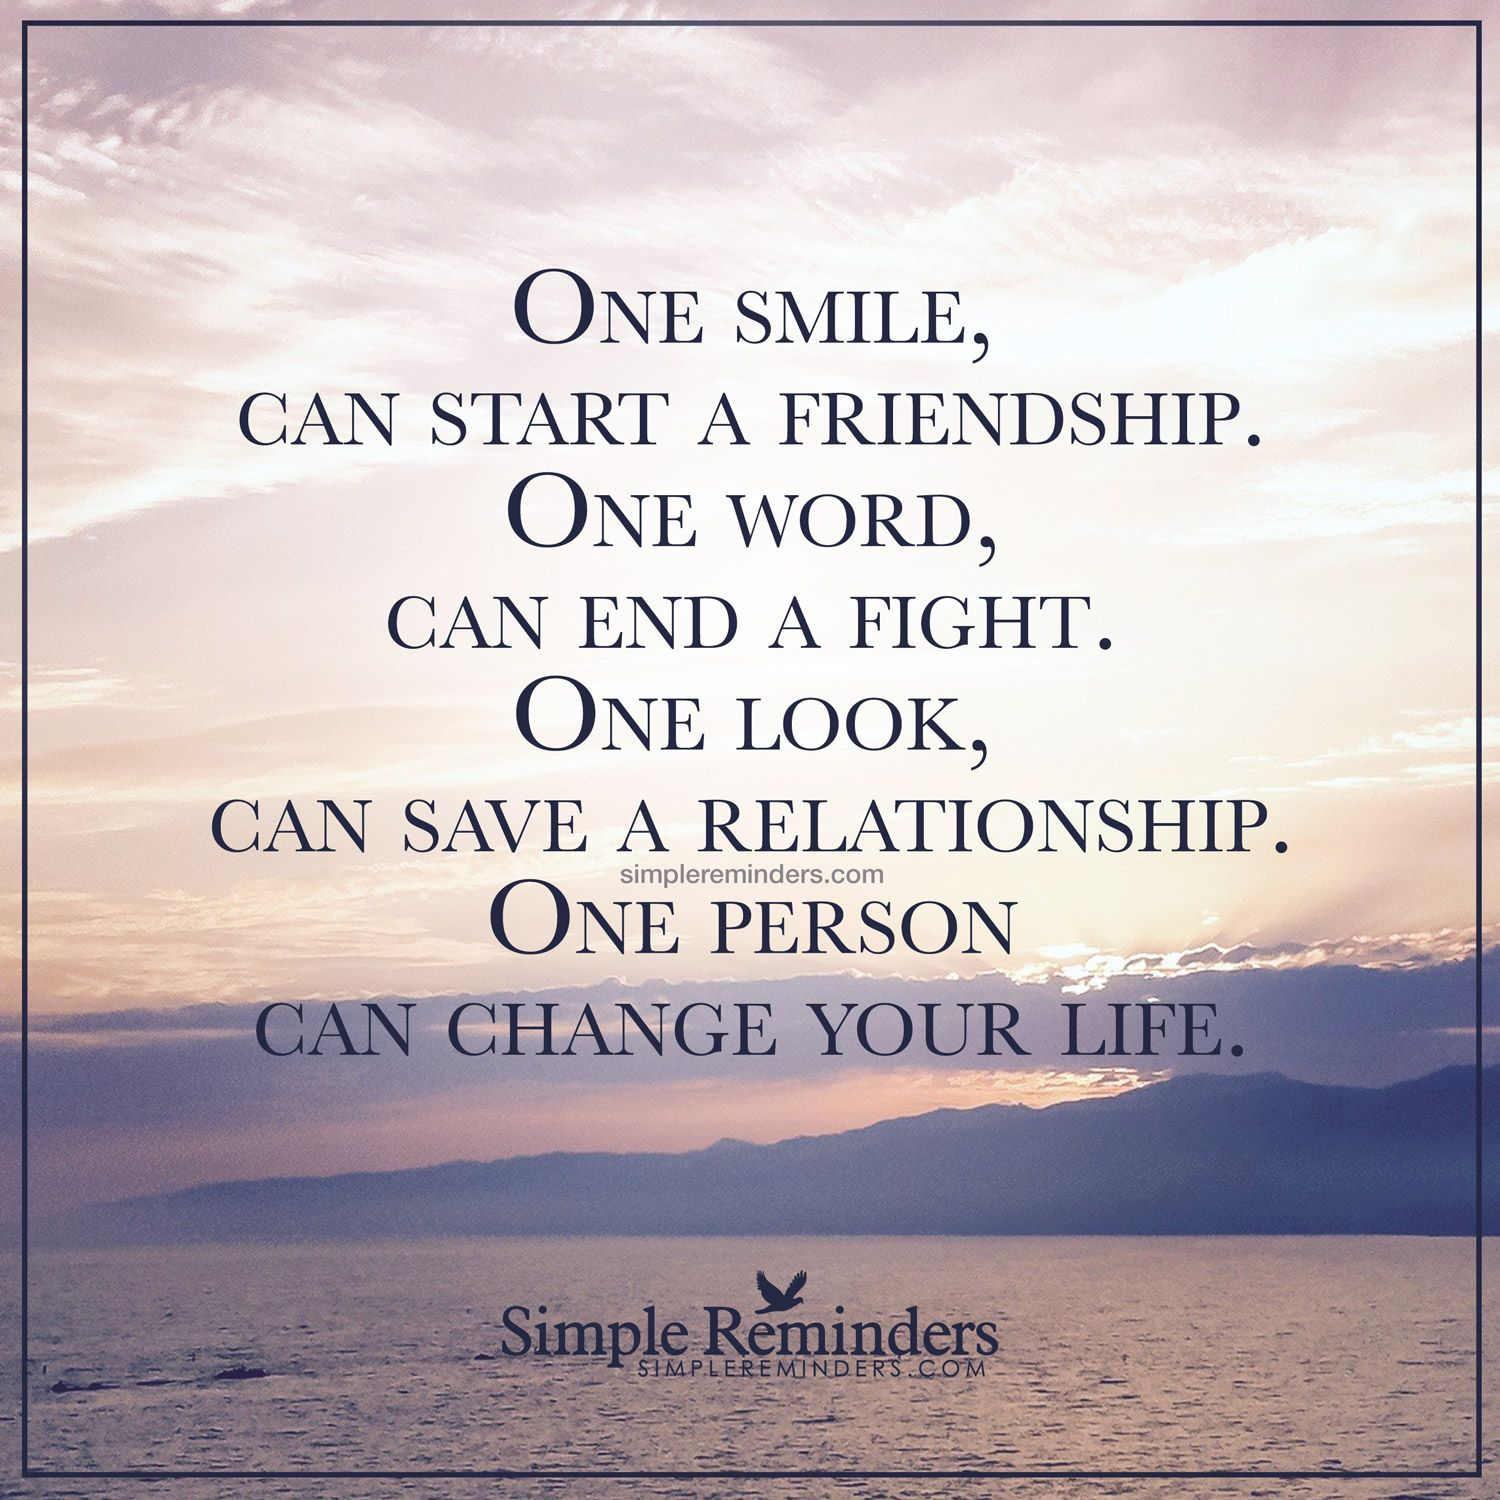 "Quotes About Smile And Friendship One Person Can Change Your Life""unknown Author  Inspiring"